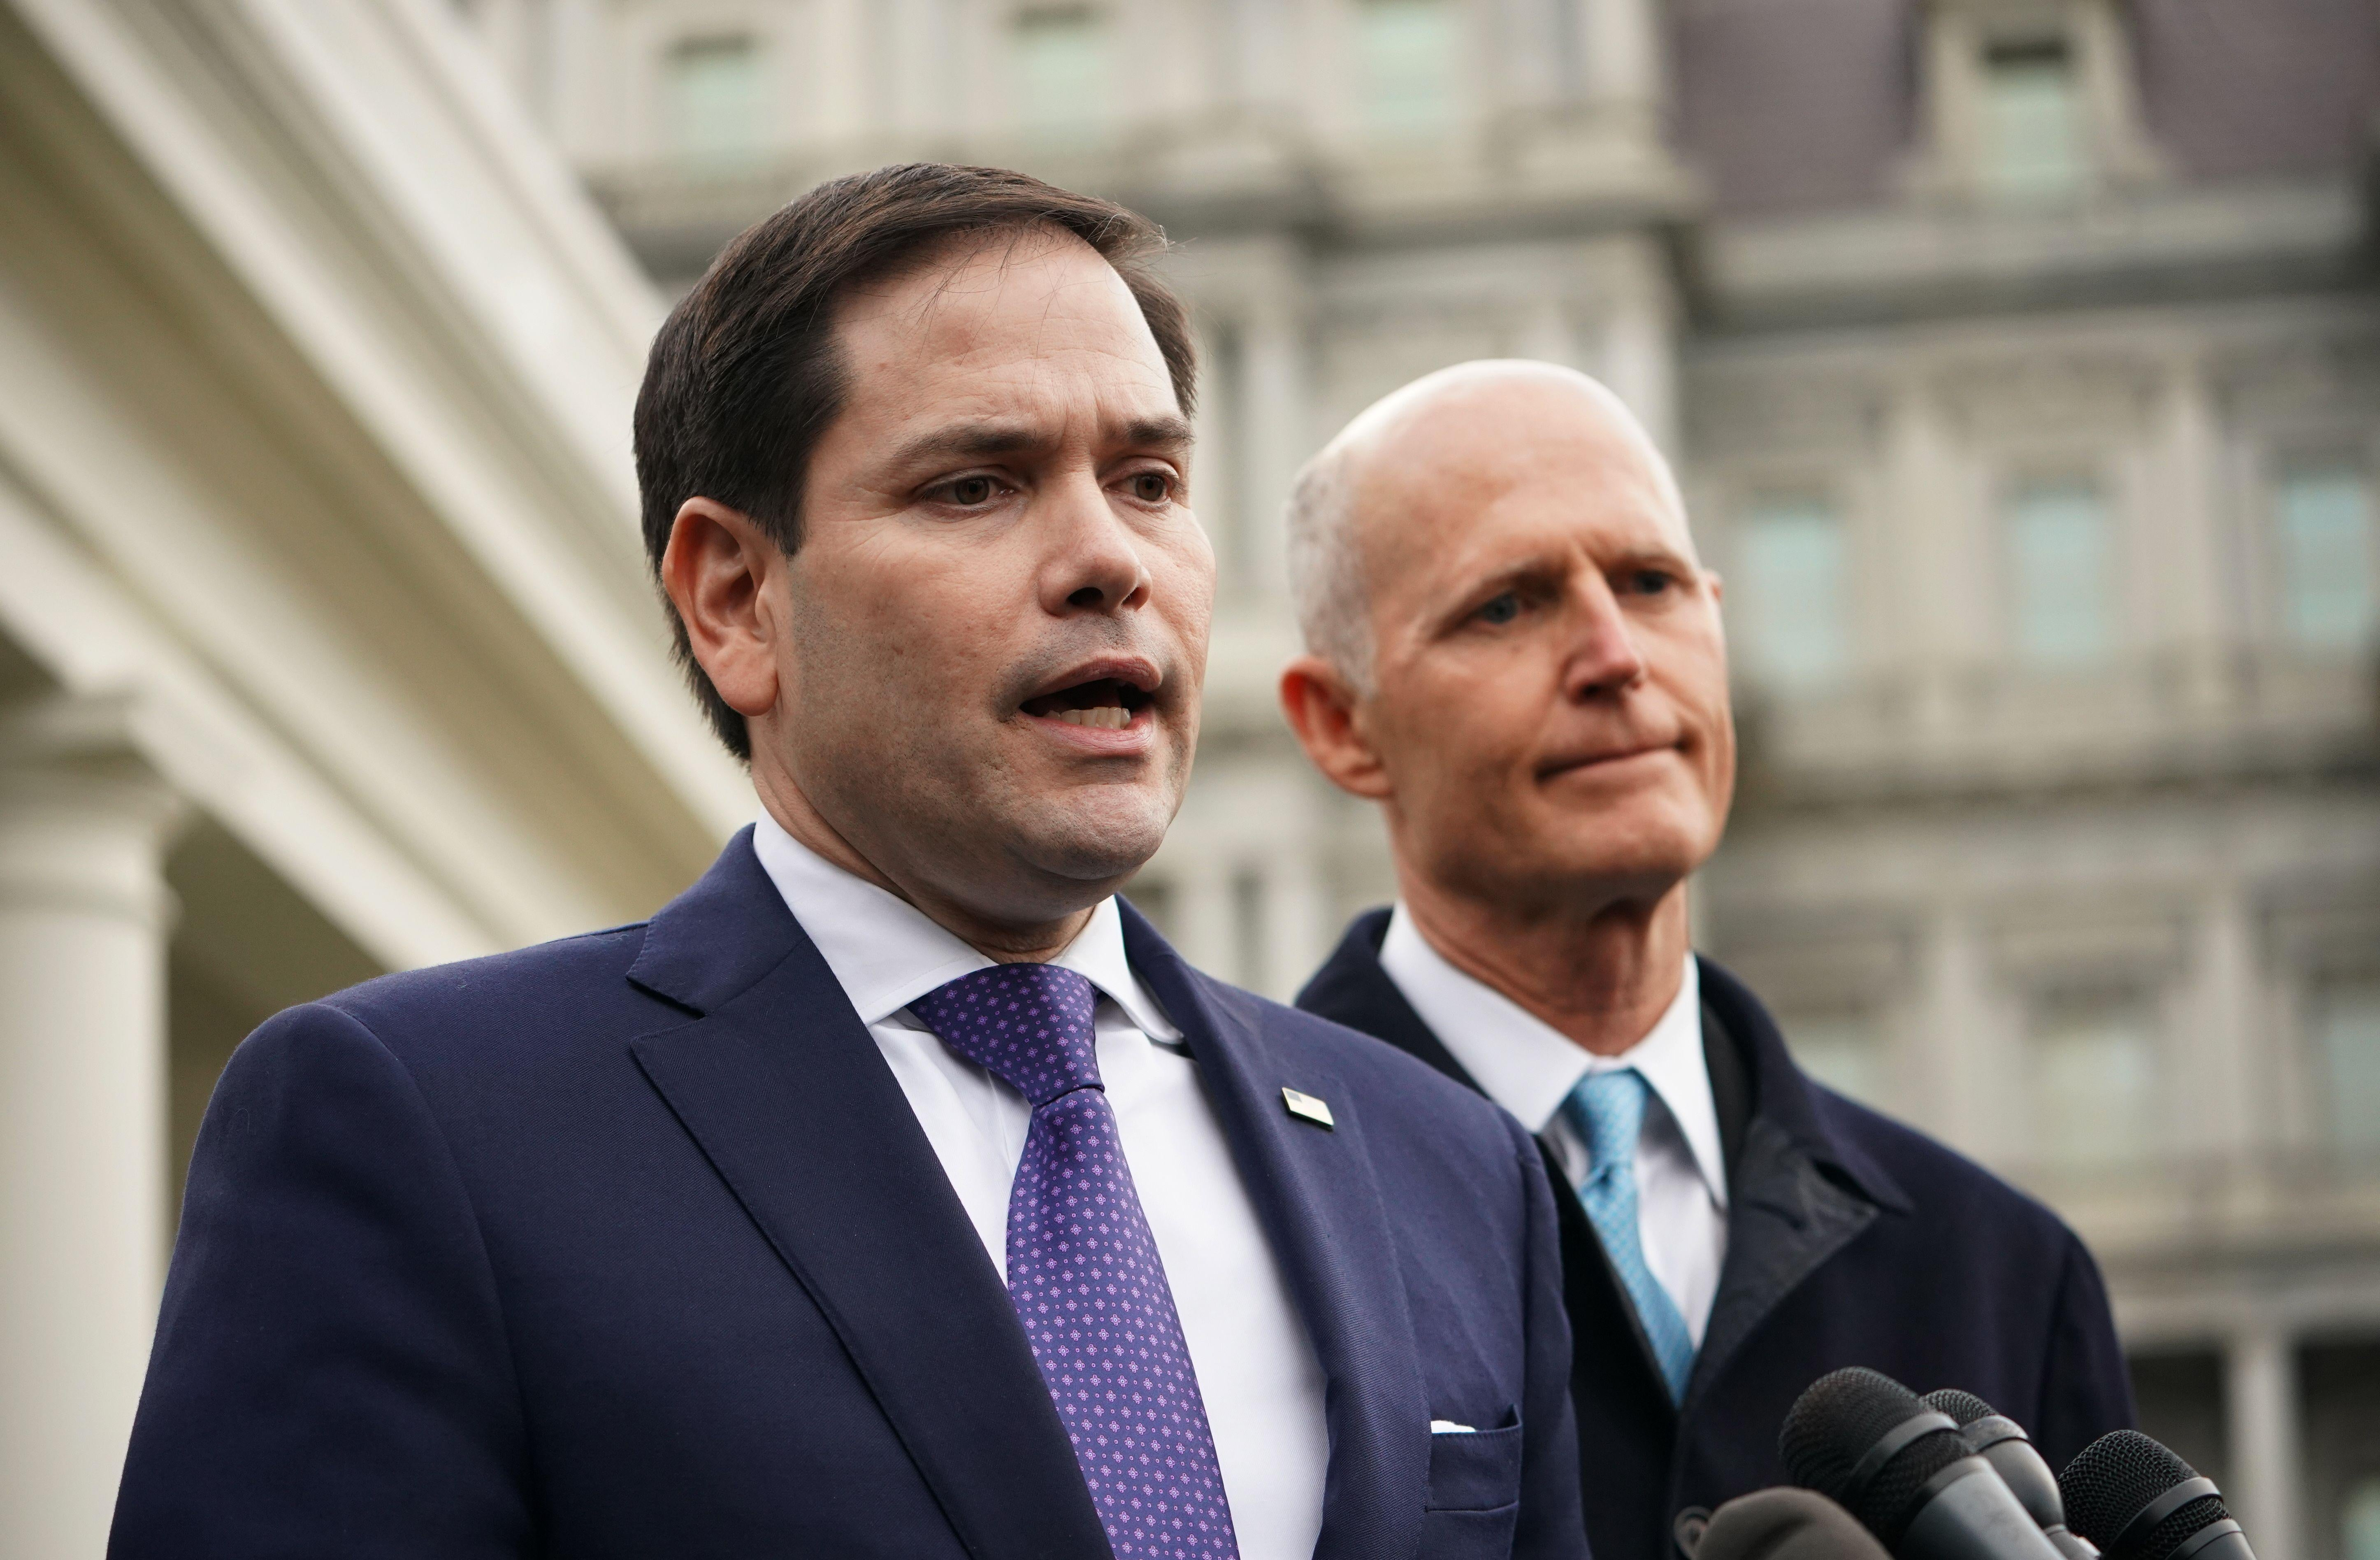 Marco Rubio speaks to reporters while Rick Scott stands by.